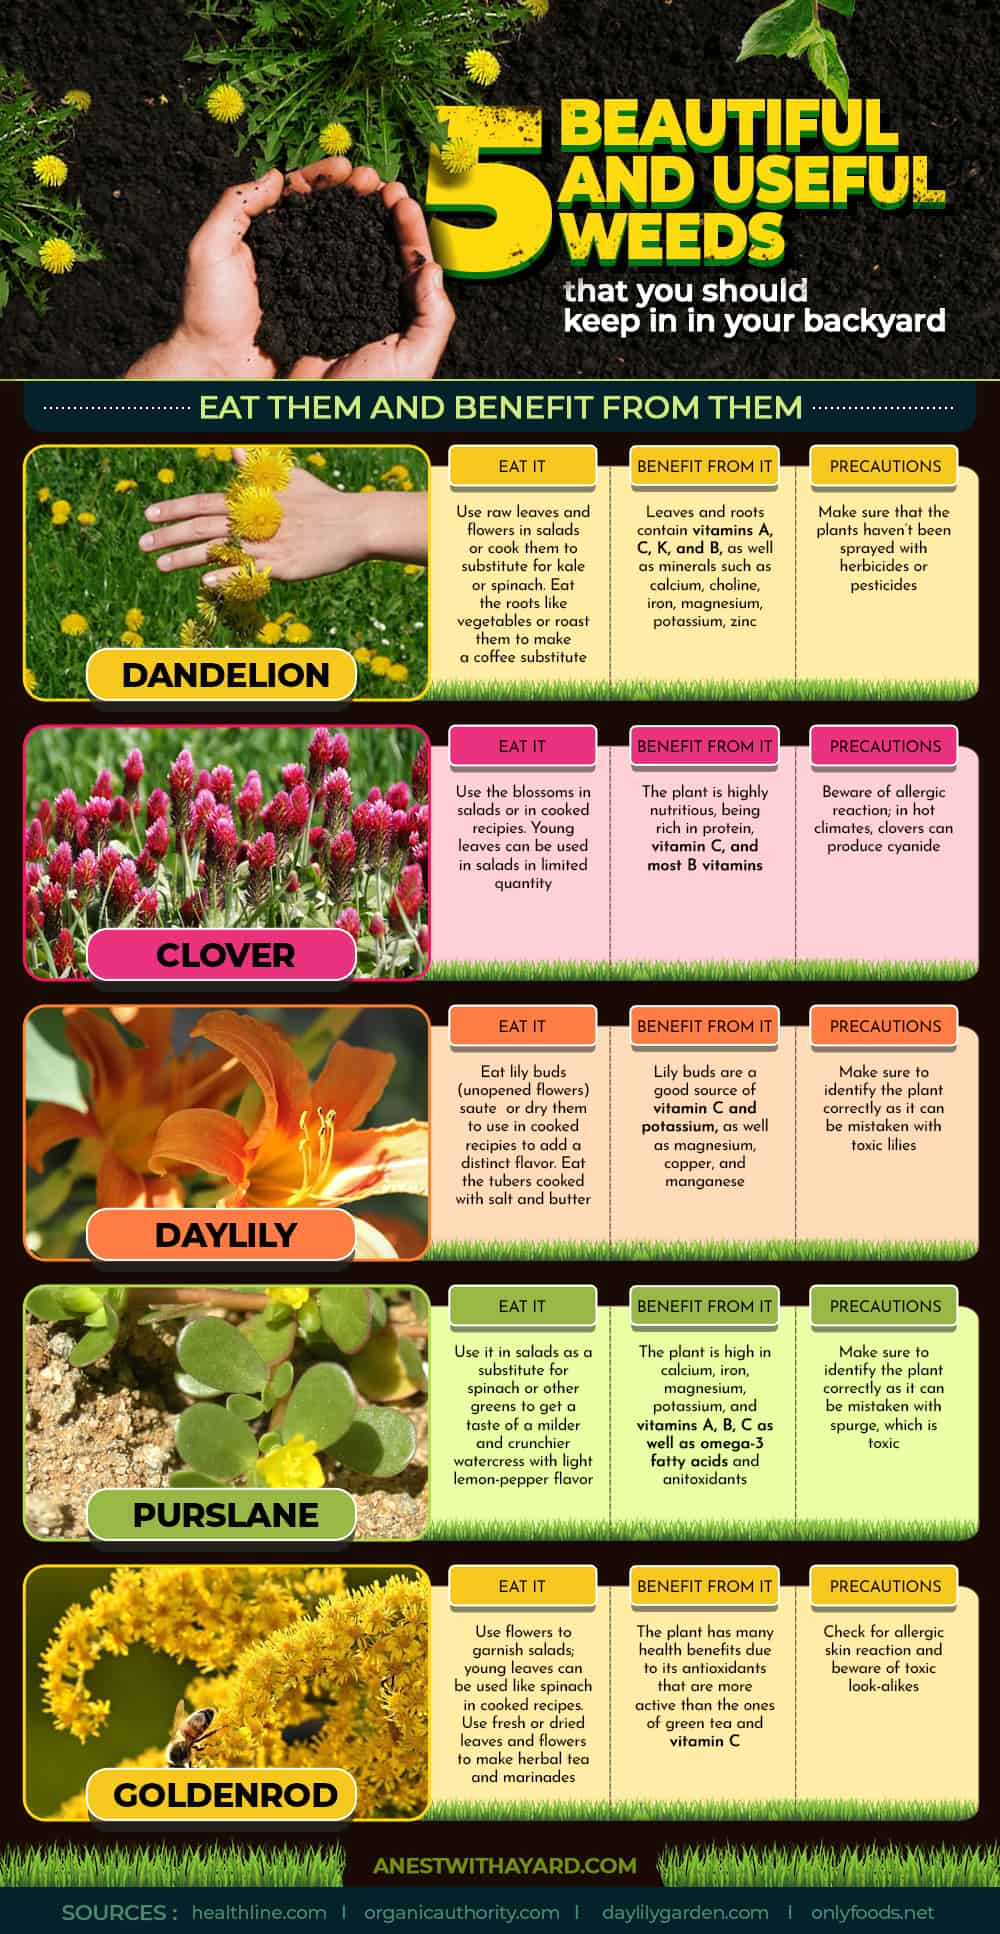 Here's 5 beautiful and useful weeds that you should keep in your backyard. Eat them and benefit from them! Also, these weeds attract bees #garden #backyard #infographic #lawn #weeds #flowers #landscaping #bees #backyardLandscaping